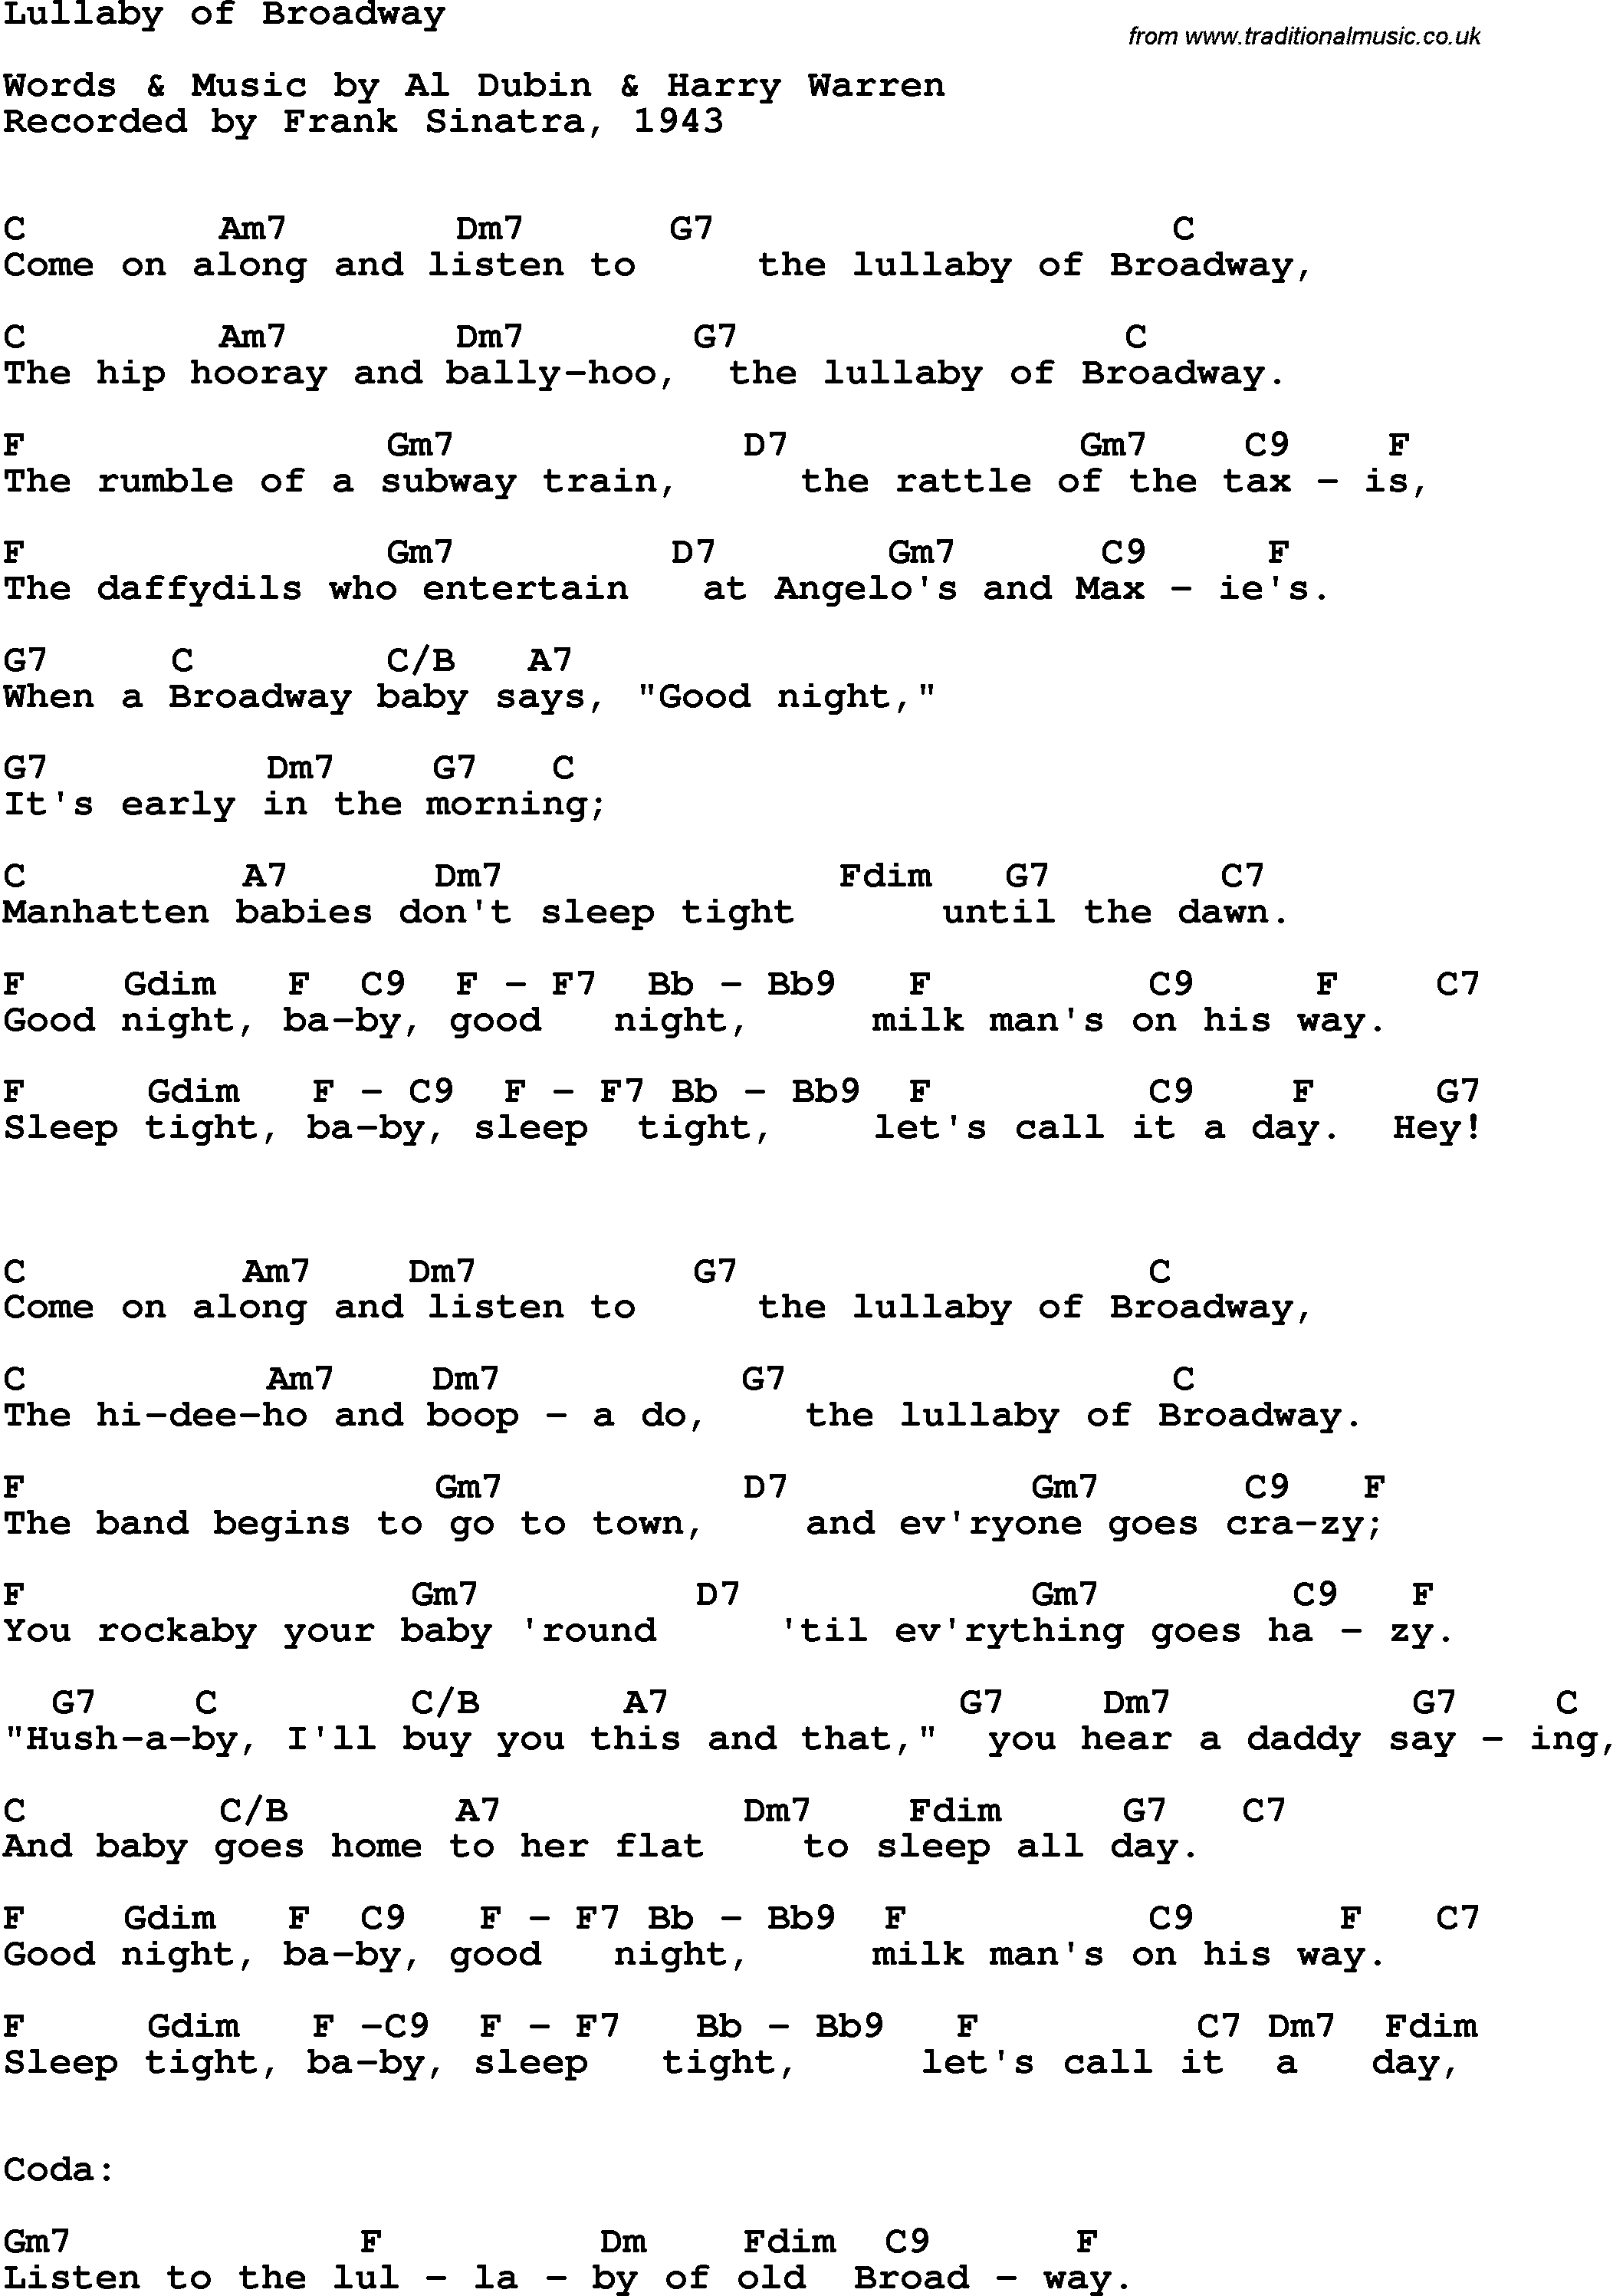 Song Lyrics With Guitar Chords For Lullaby Of Broadway Frank